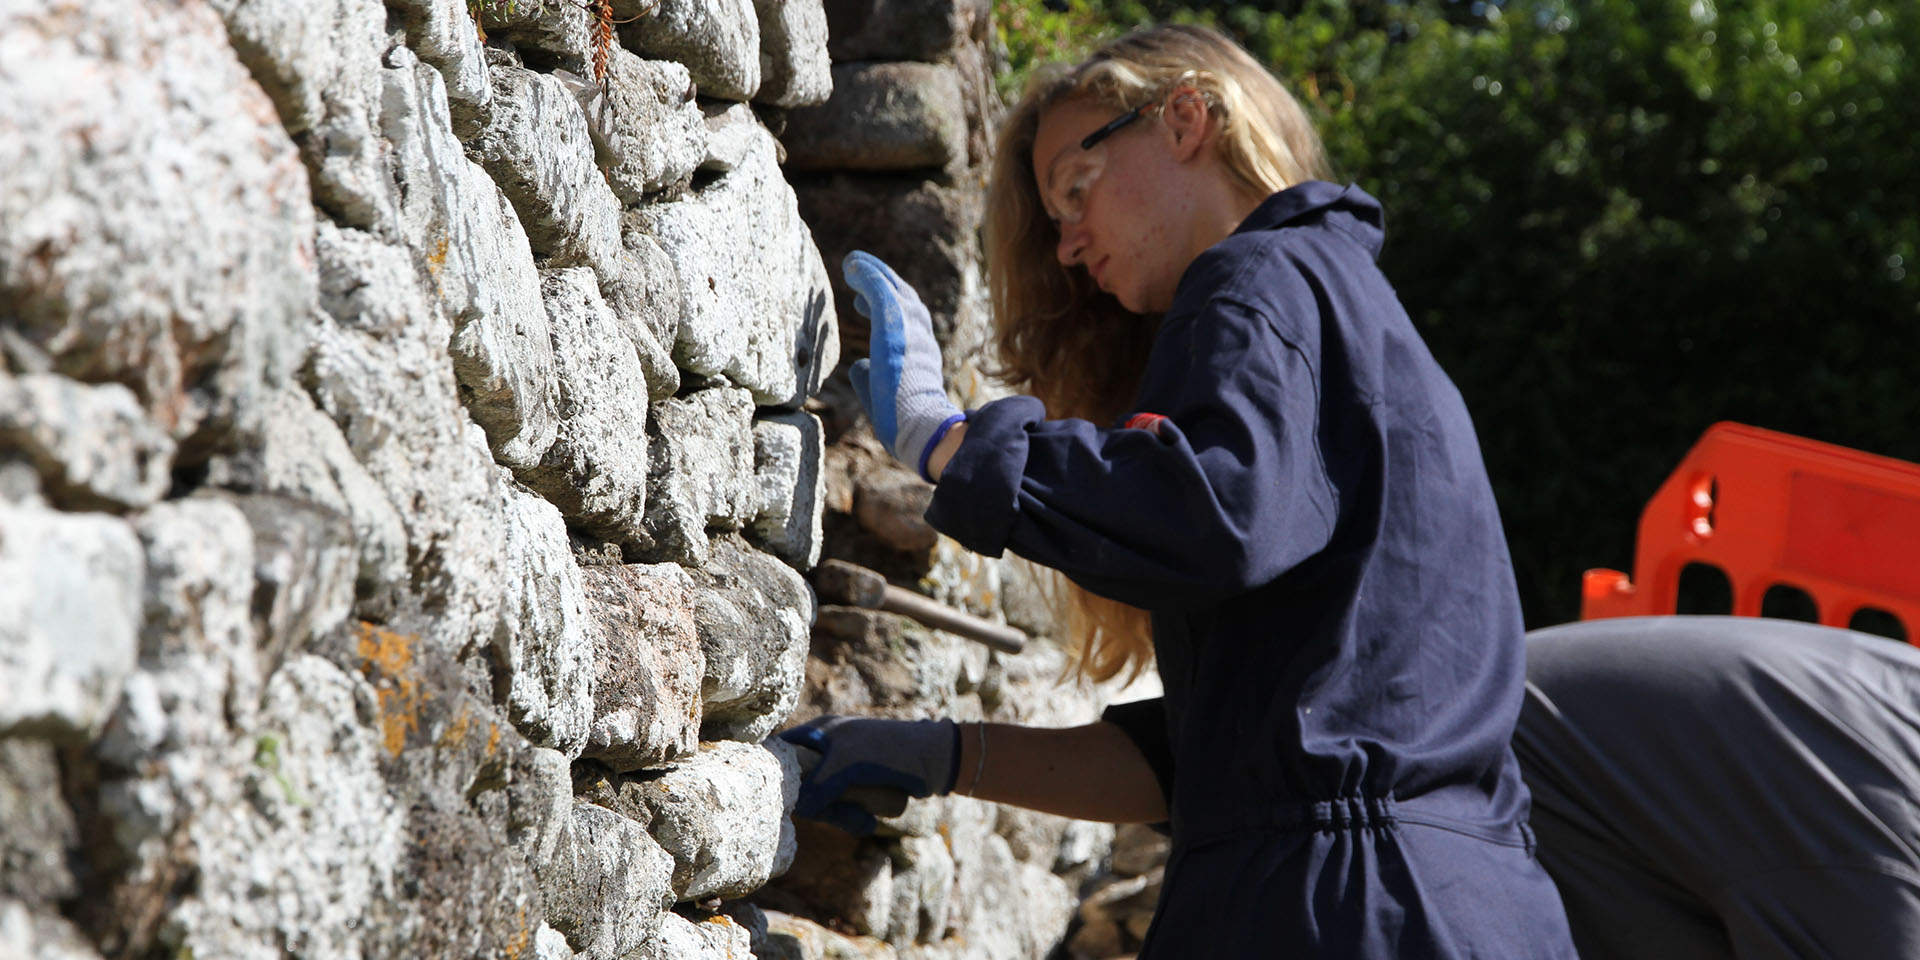 Repairing outer stone walls